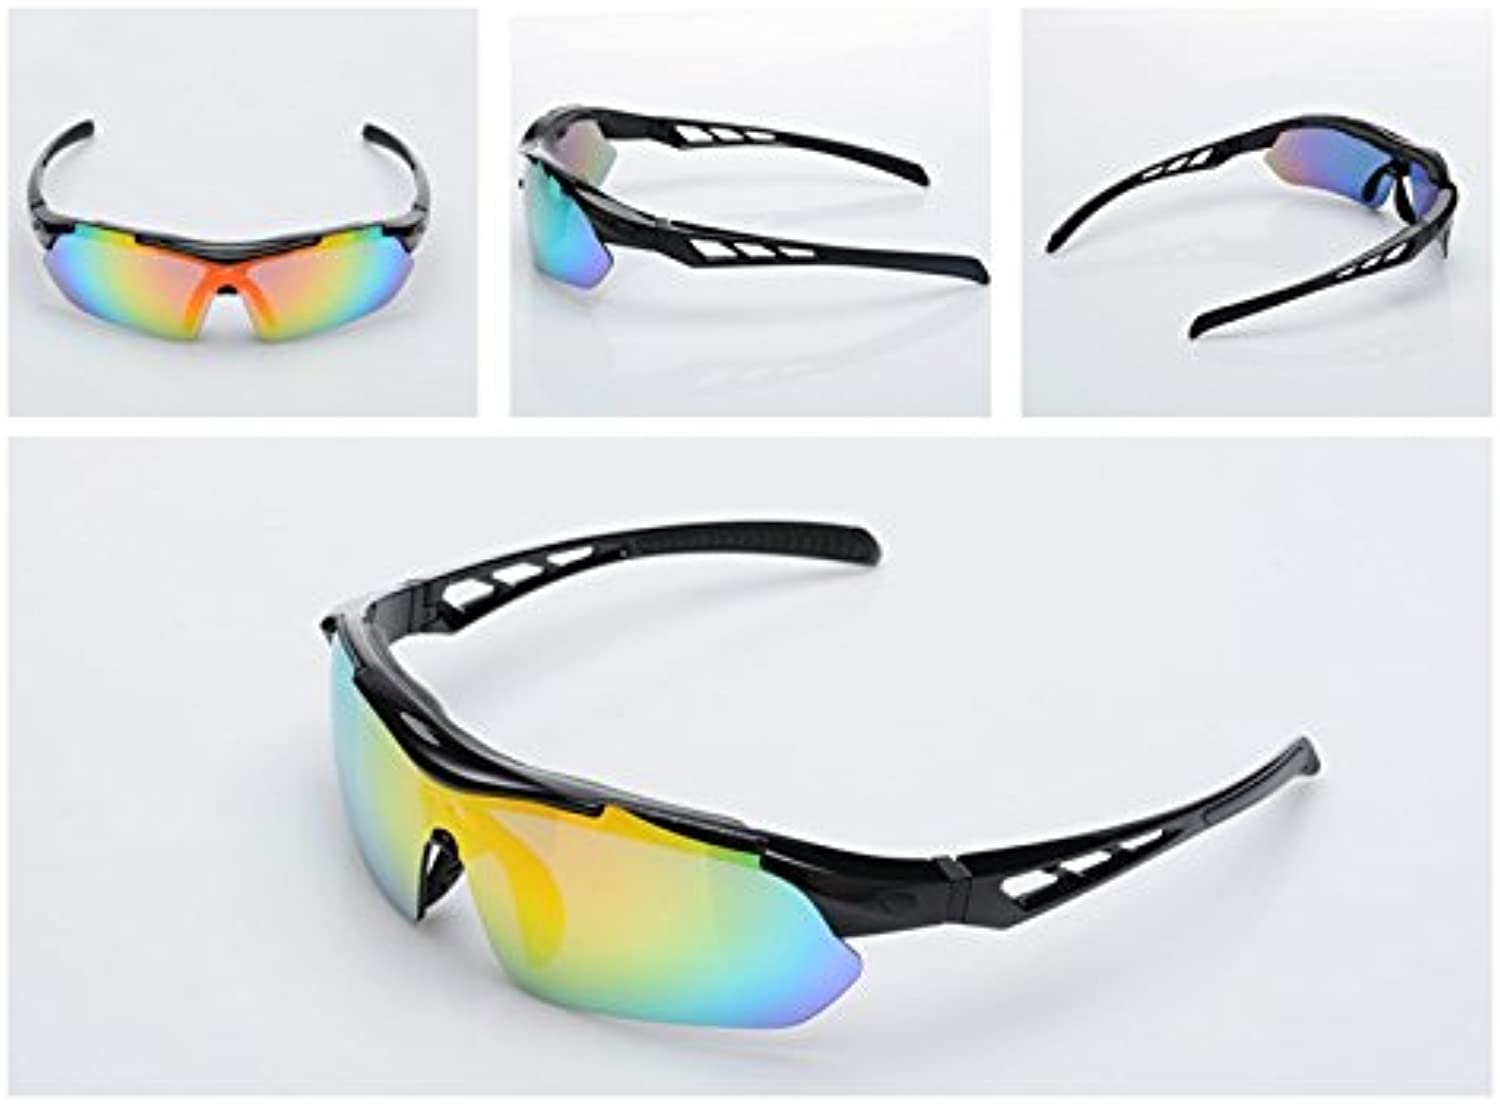 Polarized Sports Sunglasses Cycling Glasses Interchangeable Lenses Cycling Glasses for Outdoor Sports(Black)